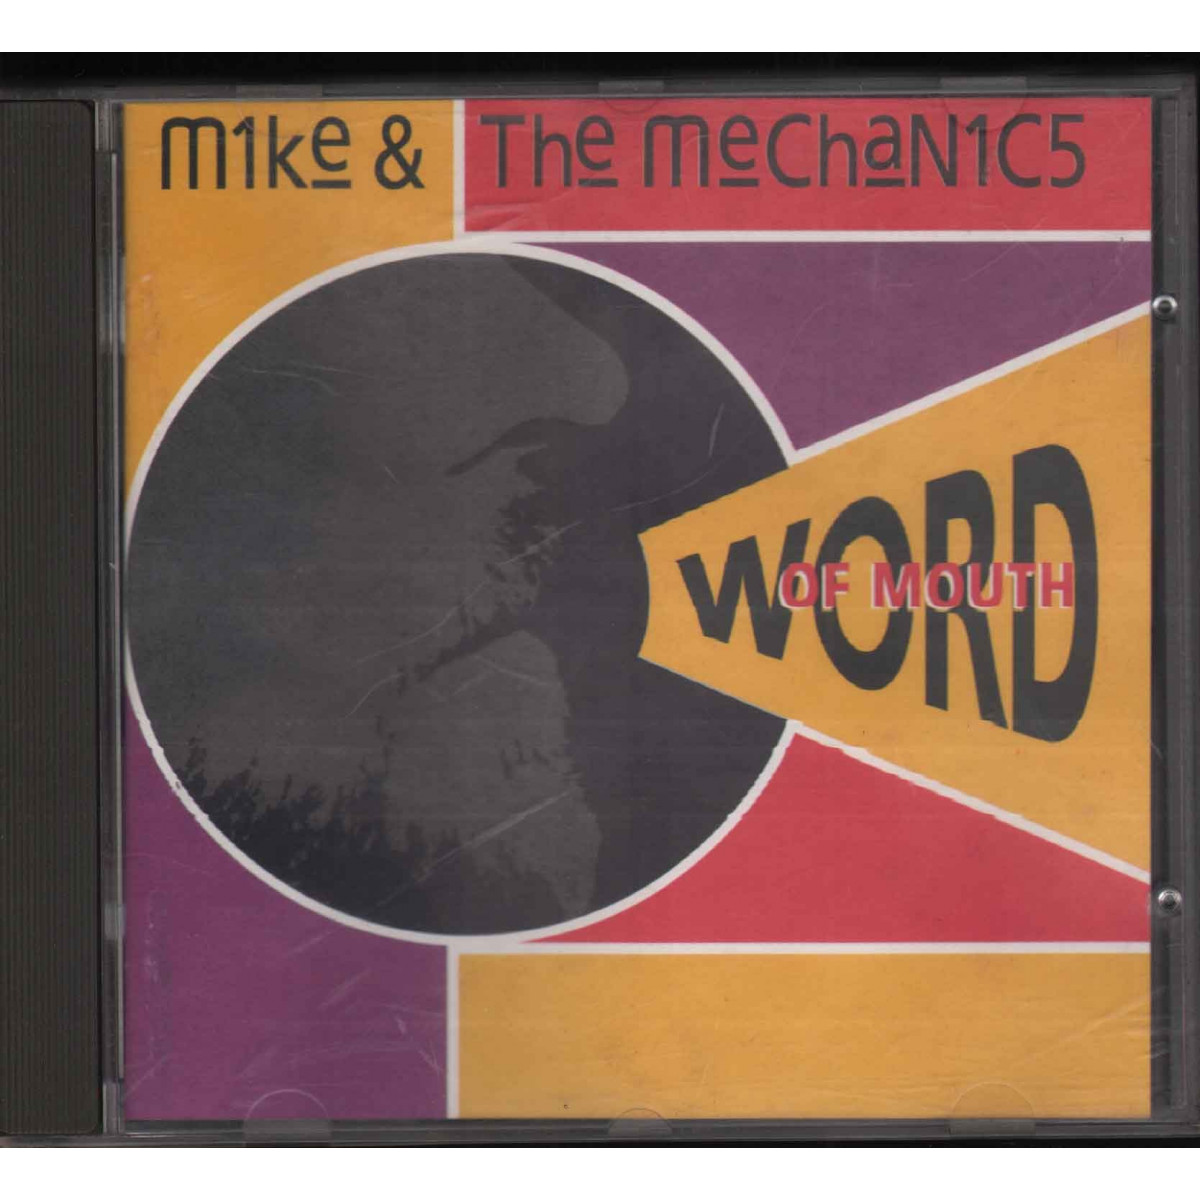 Mike & The Mechanics CD Word Of Mouth - CDV 2662  Nuovo 5012981266226